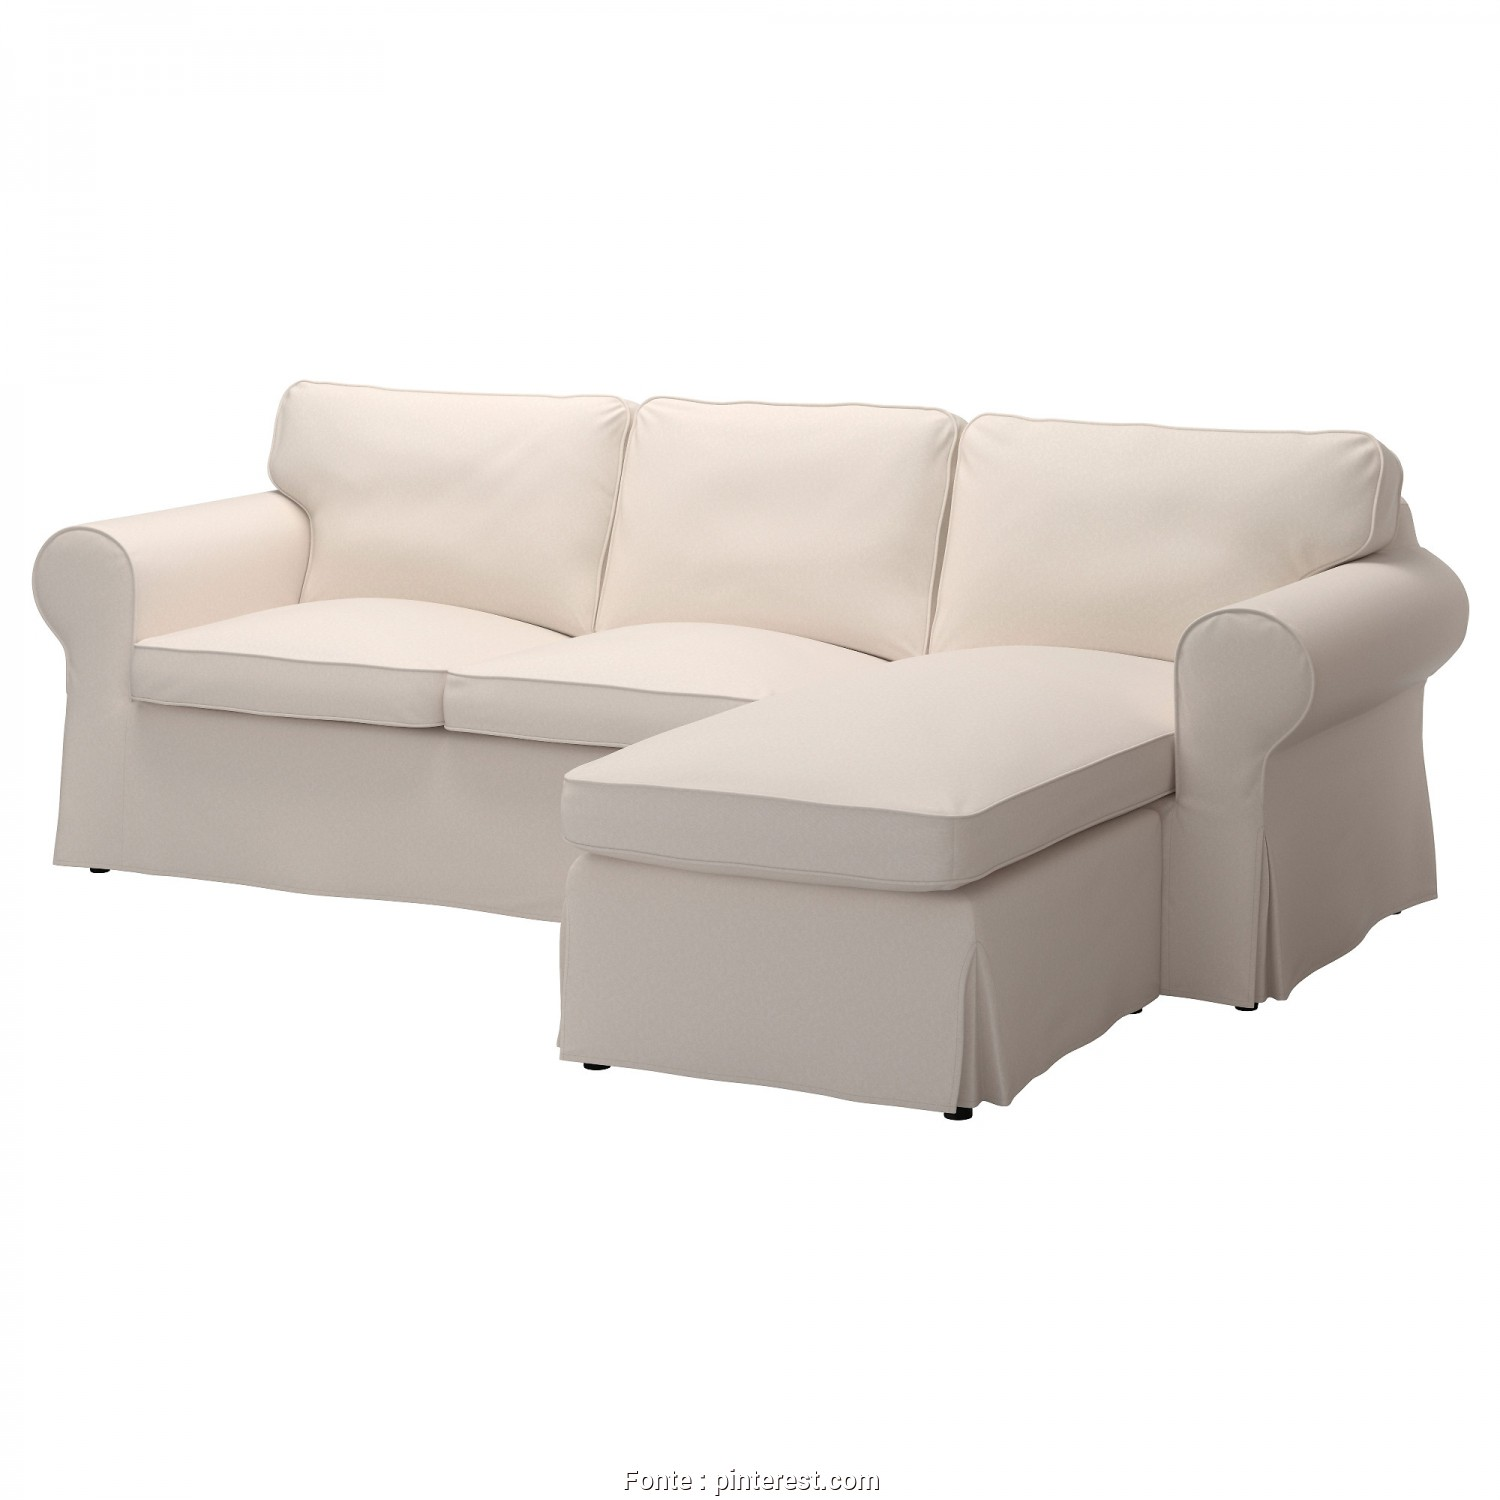 Divano Ikea Ektorp, Chaise Longue, Semplice EKTORP Sofa, Lofallet With Chaise, Lofallet Beige, Home Decor